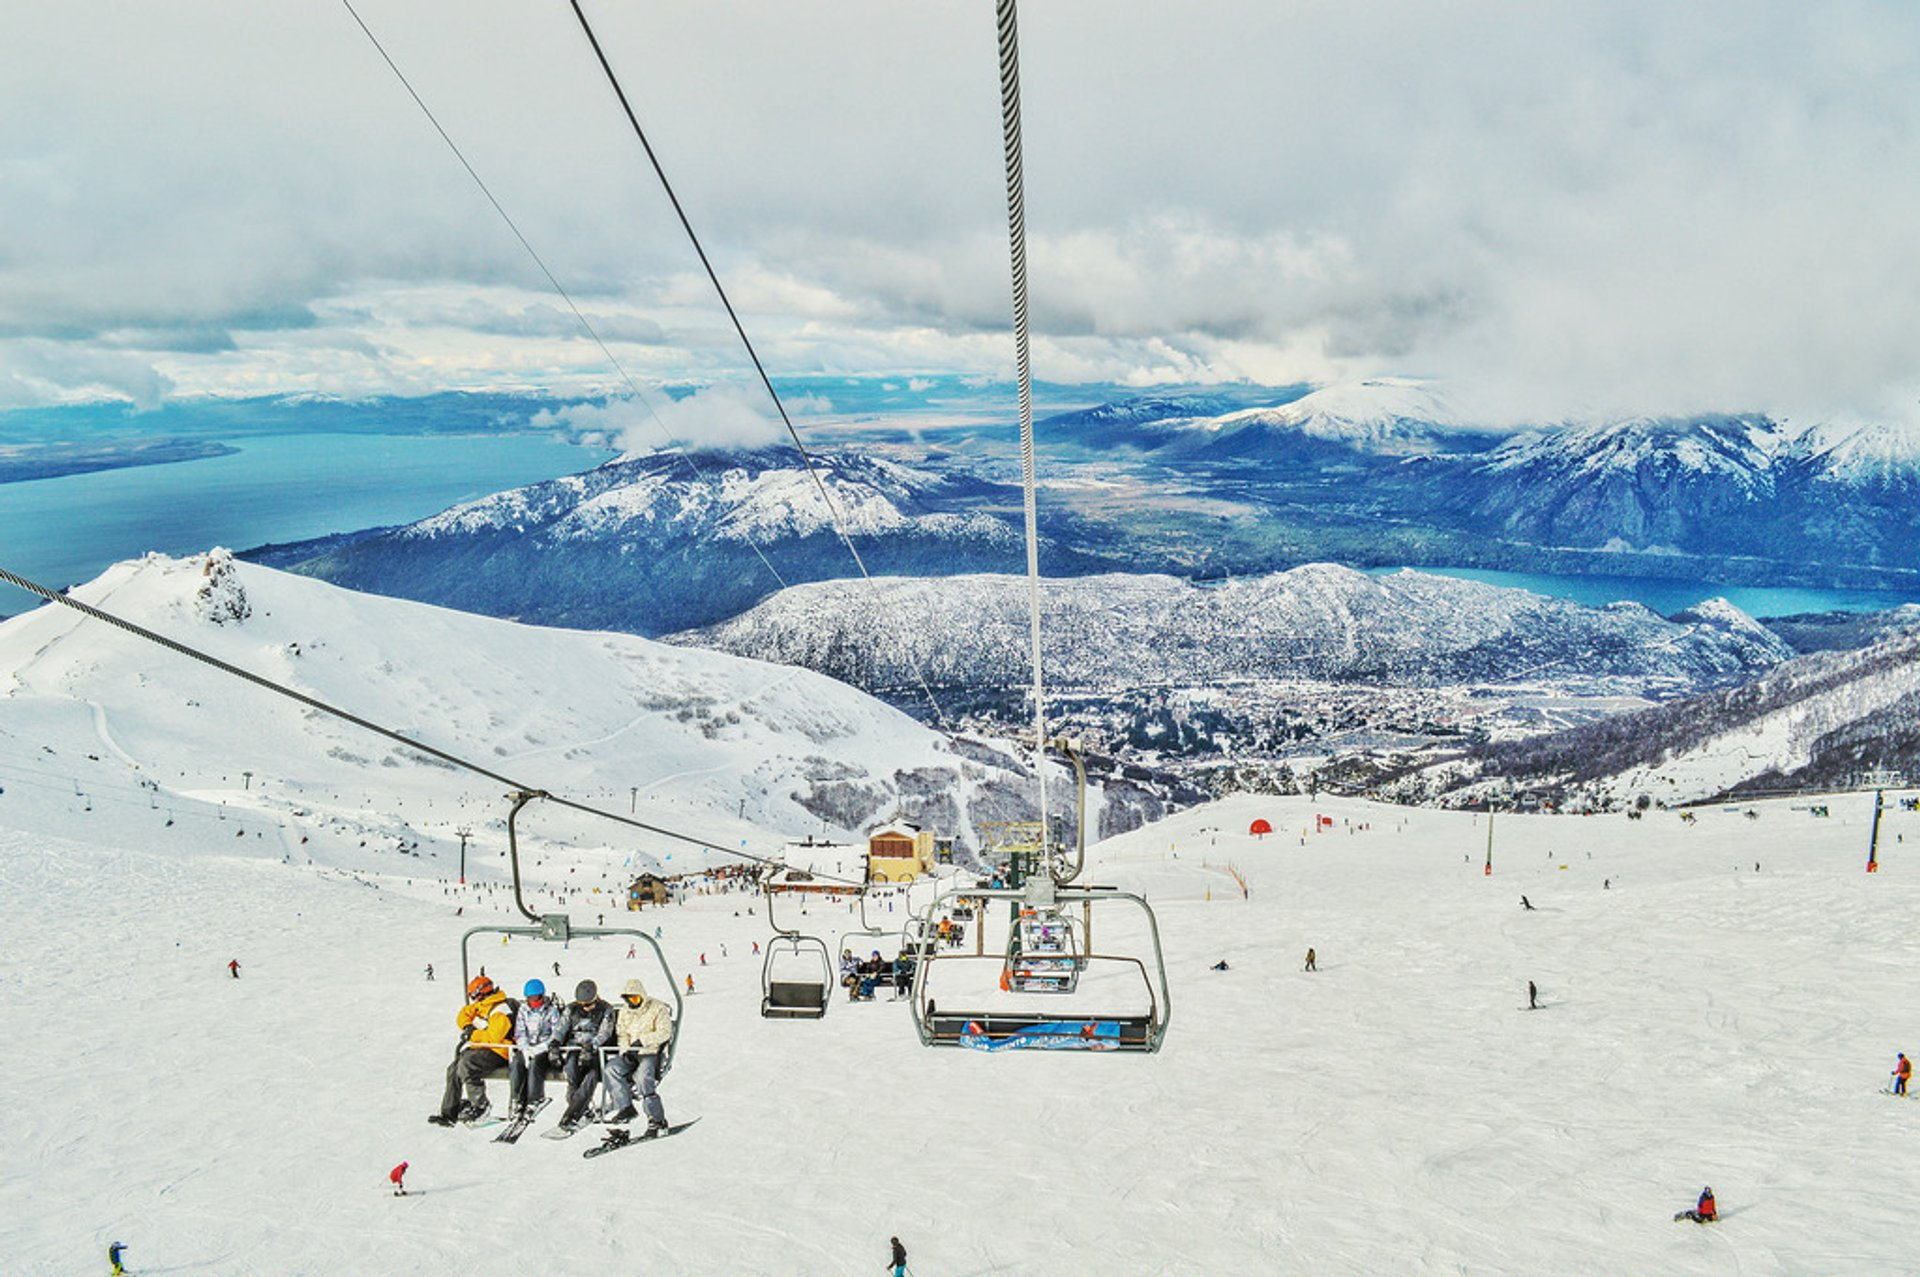 Skiing and Snowboarding in the Andes in Argentina 2020 - Best Time